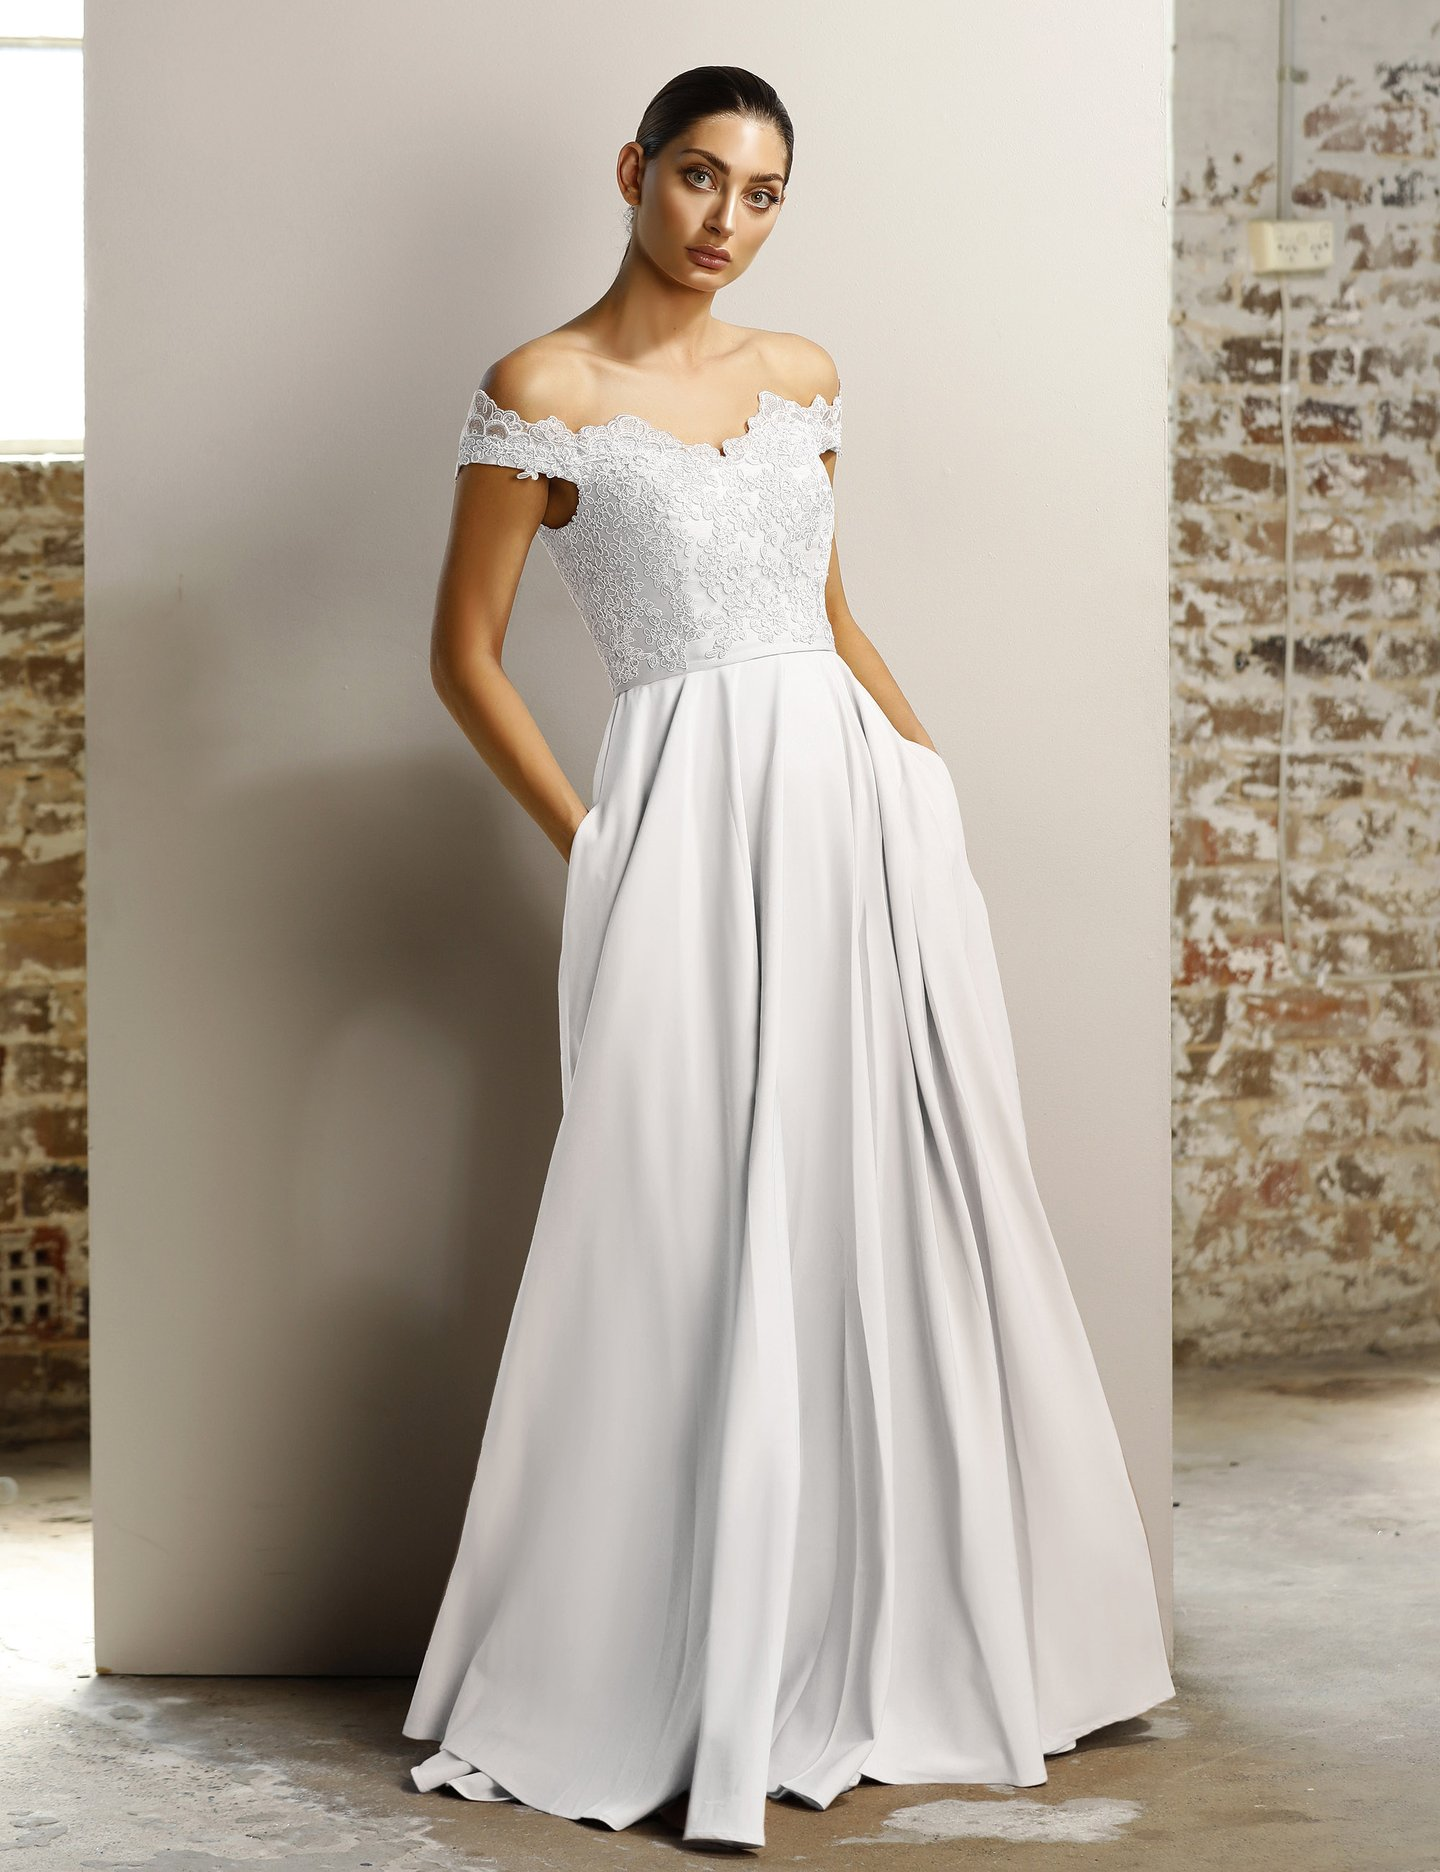 weddingdress8